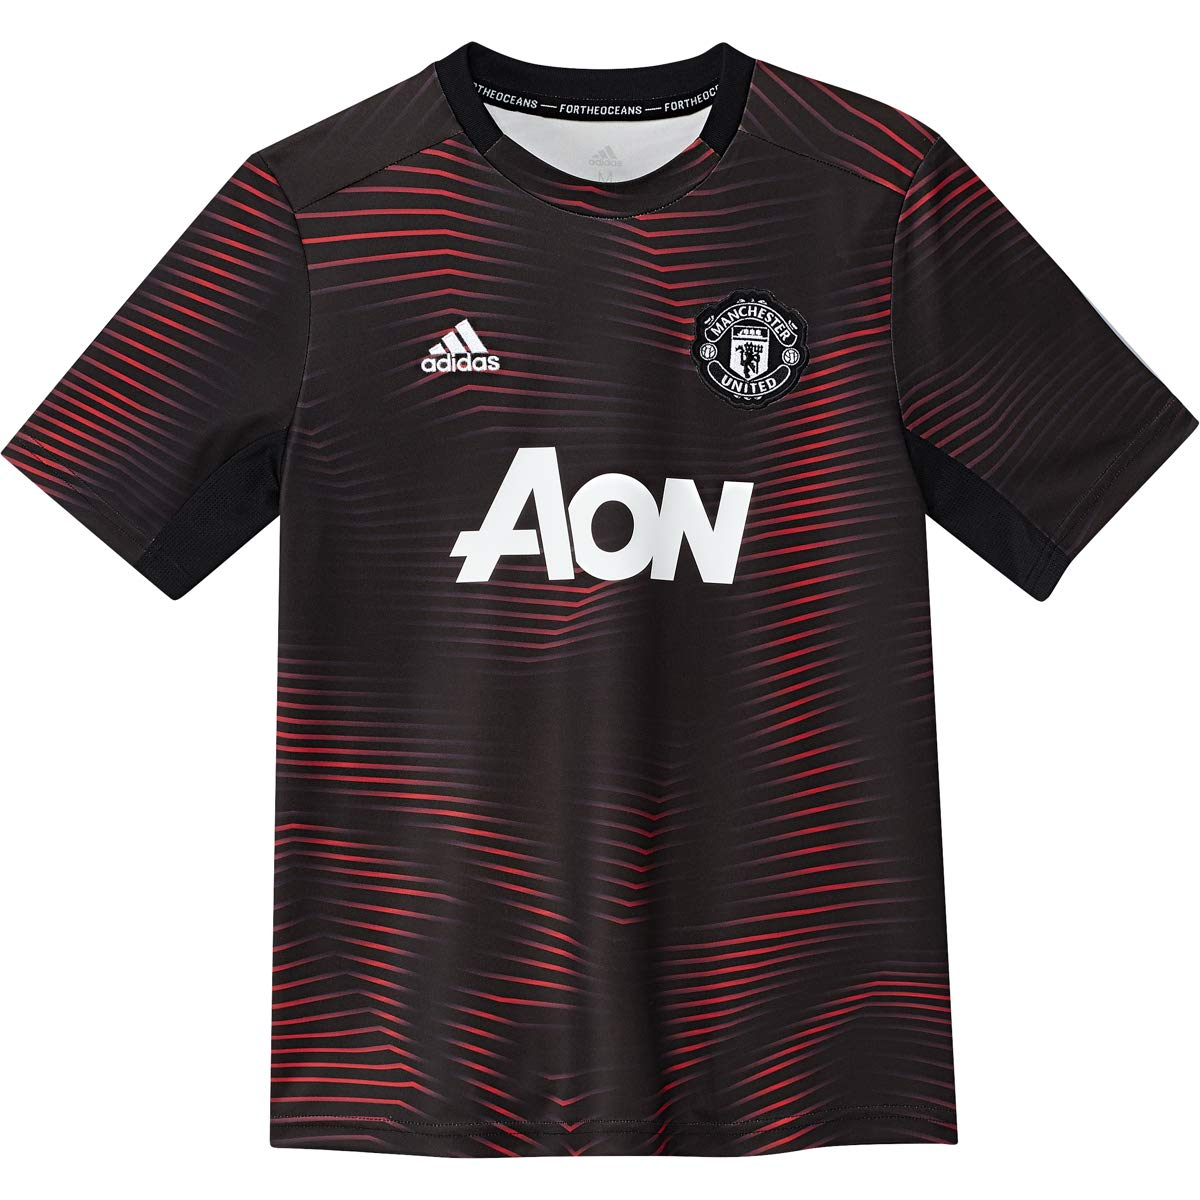 Adidas Youth Manchester United Preshirt 2018 2019